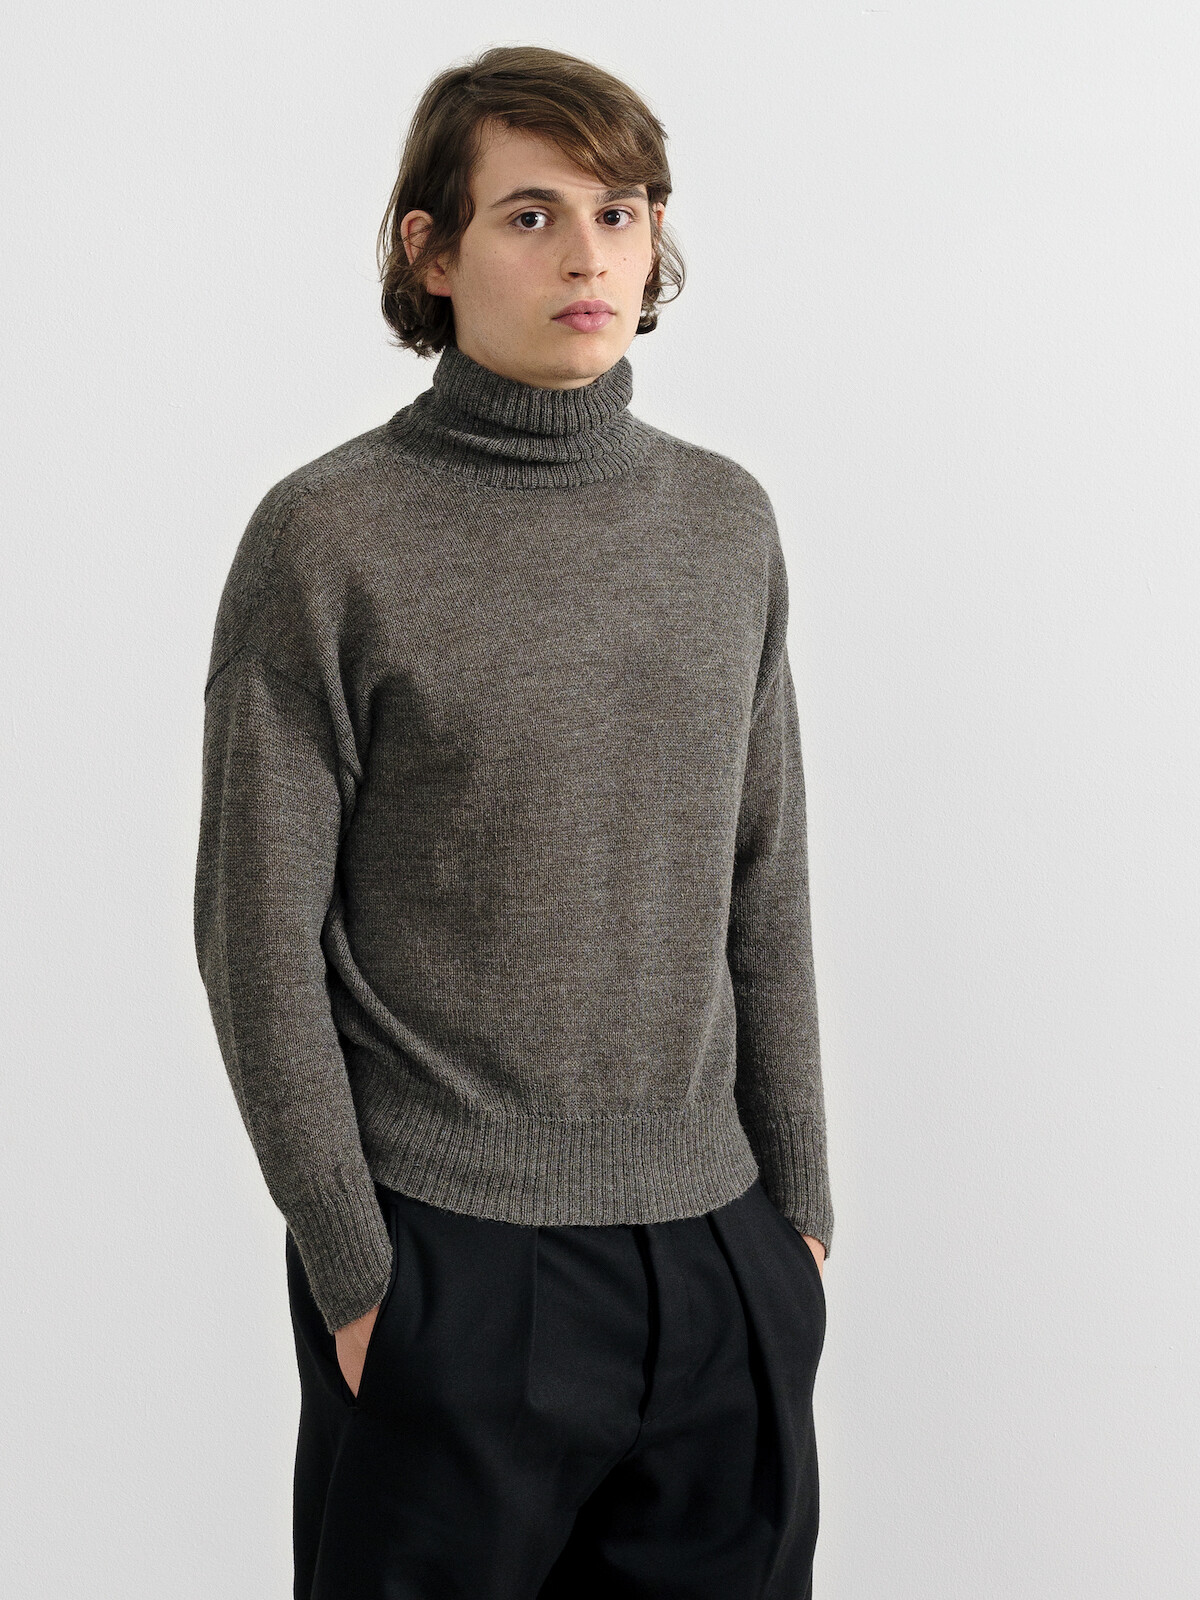 the Roll-neck Image